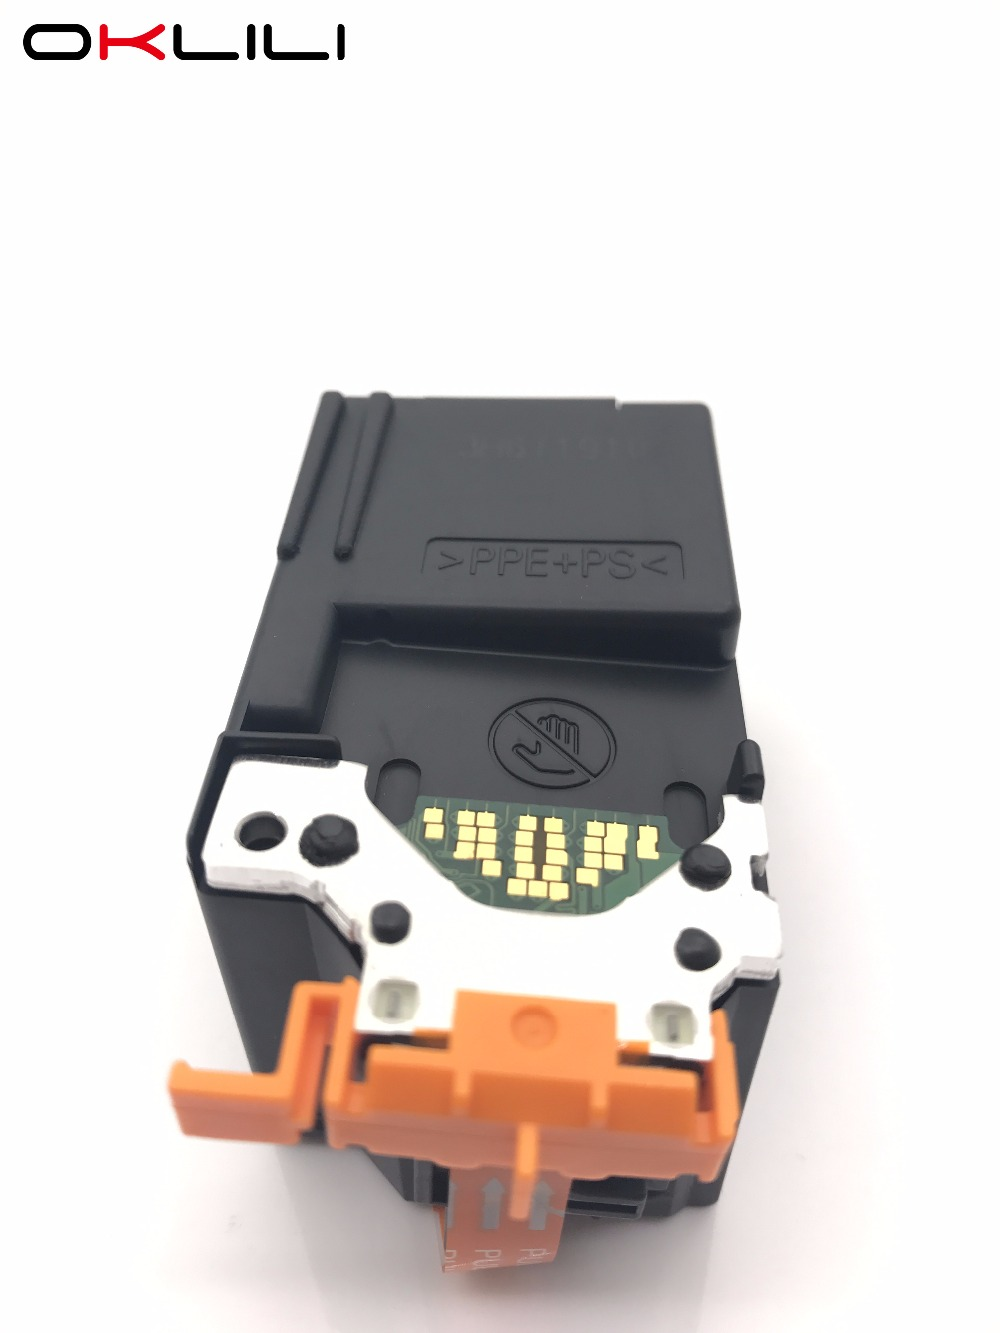 OKLILI ORIGINAL NEW QY6-0038 QY6-0038-000 Printhead Print Head Printer Head for Canon BJ S200 S200x S200SP S200SPx original qy6 0075 qy6 0075 000 printhead print head printer head for canon ip5300 mp810 ip4500 mp610 mx850